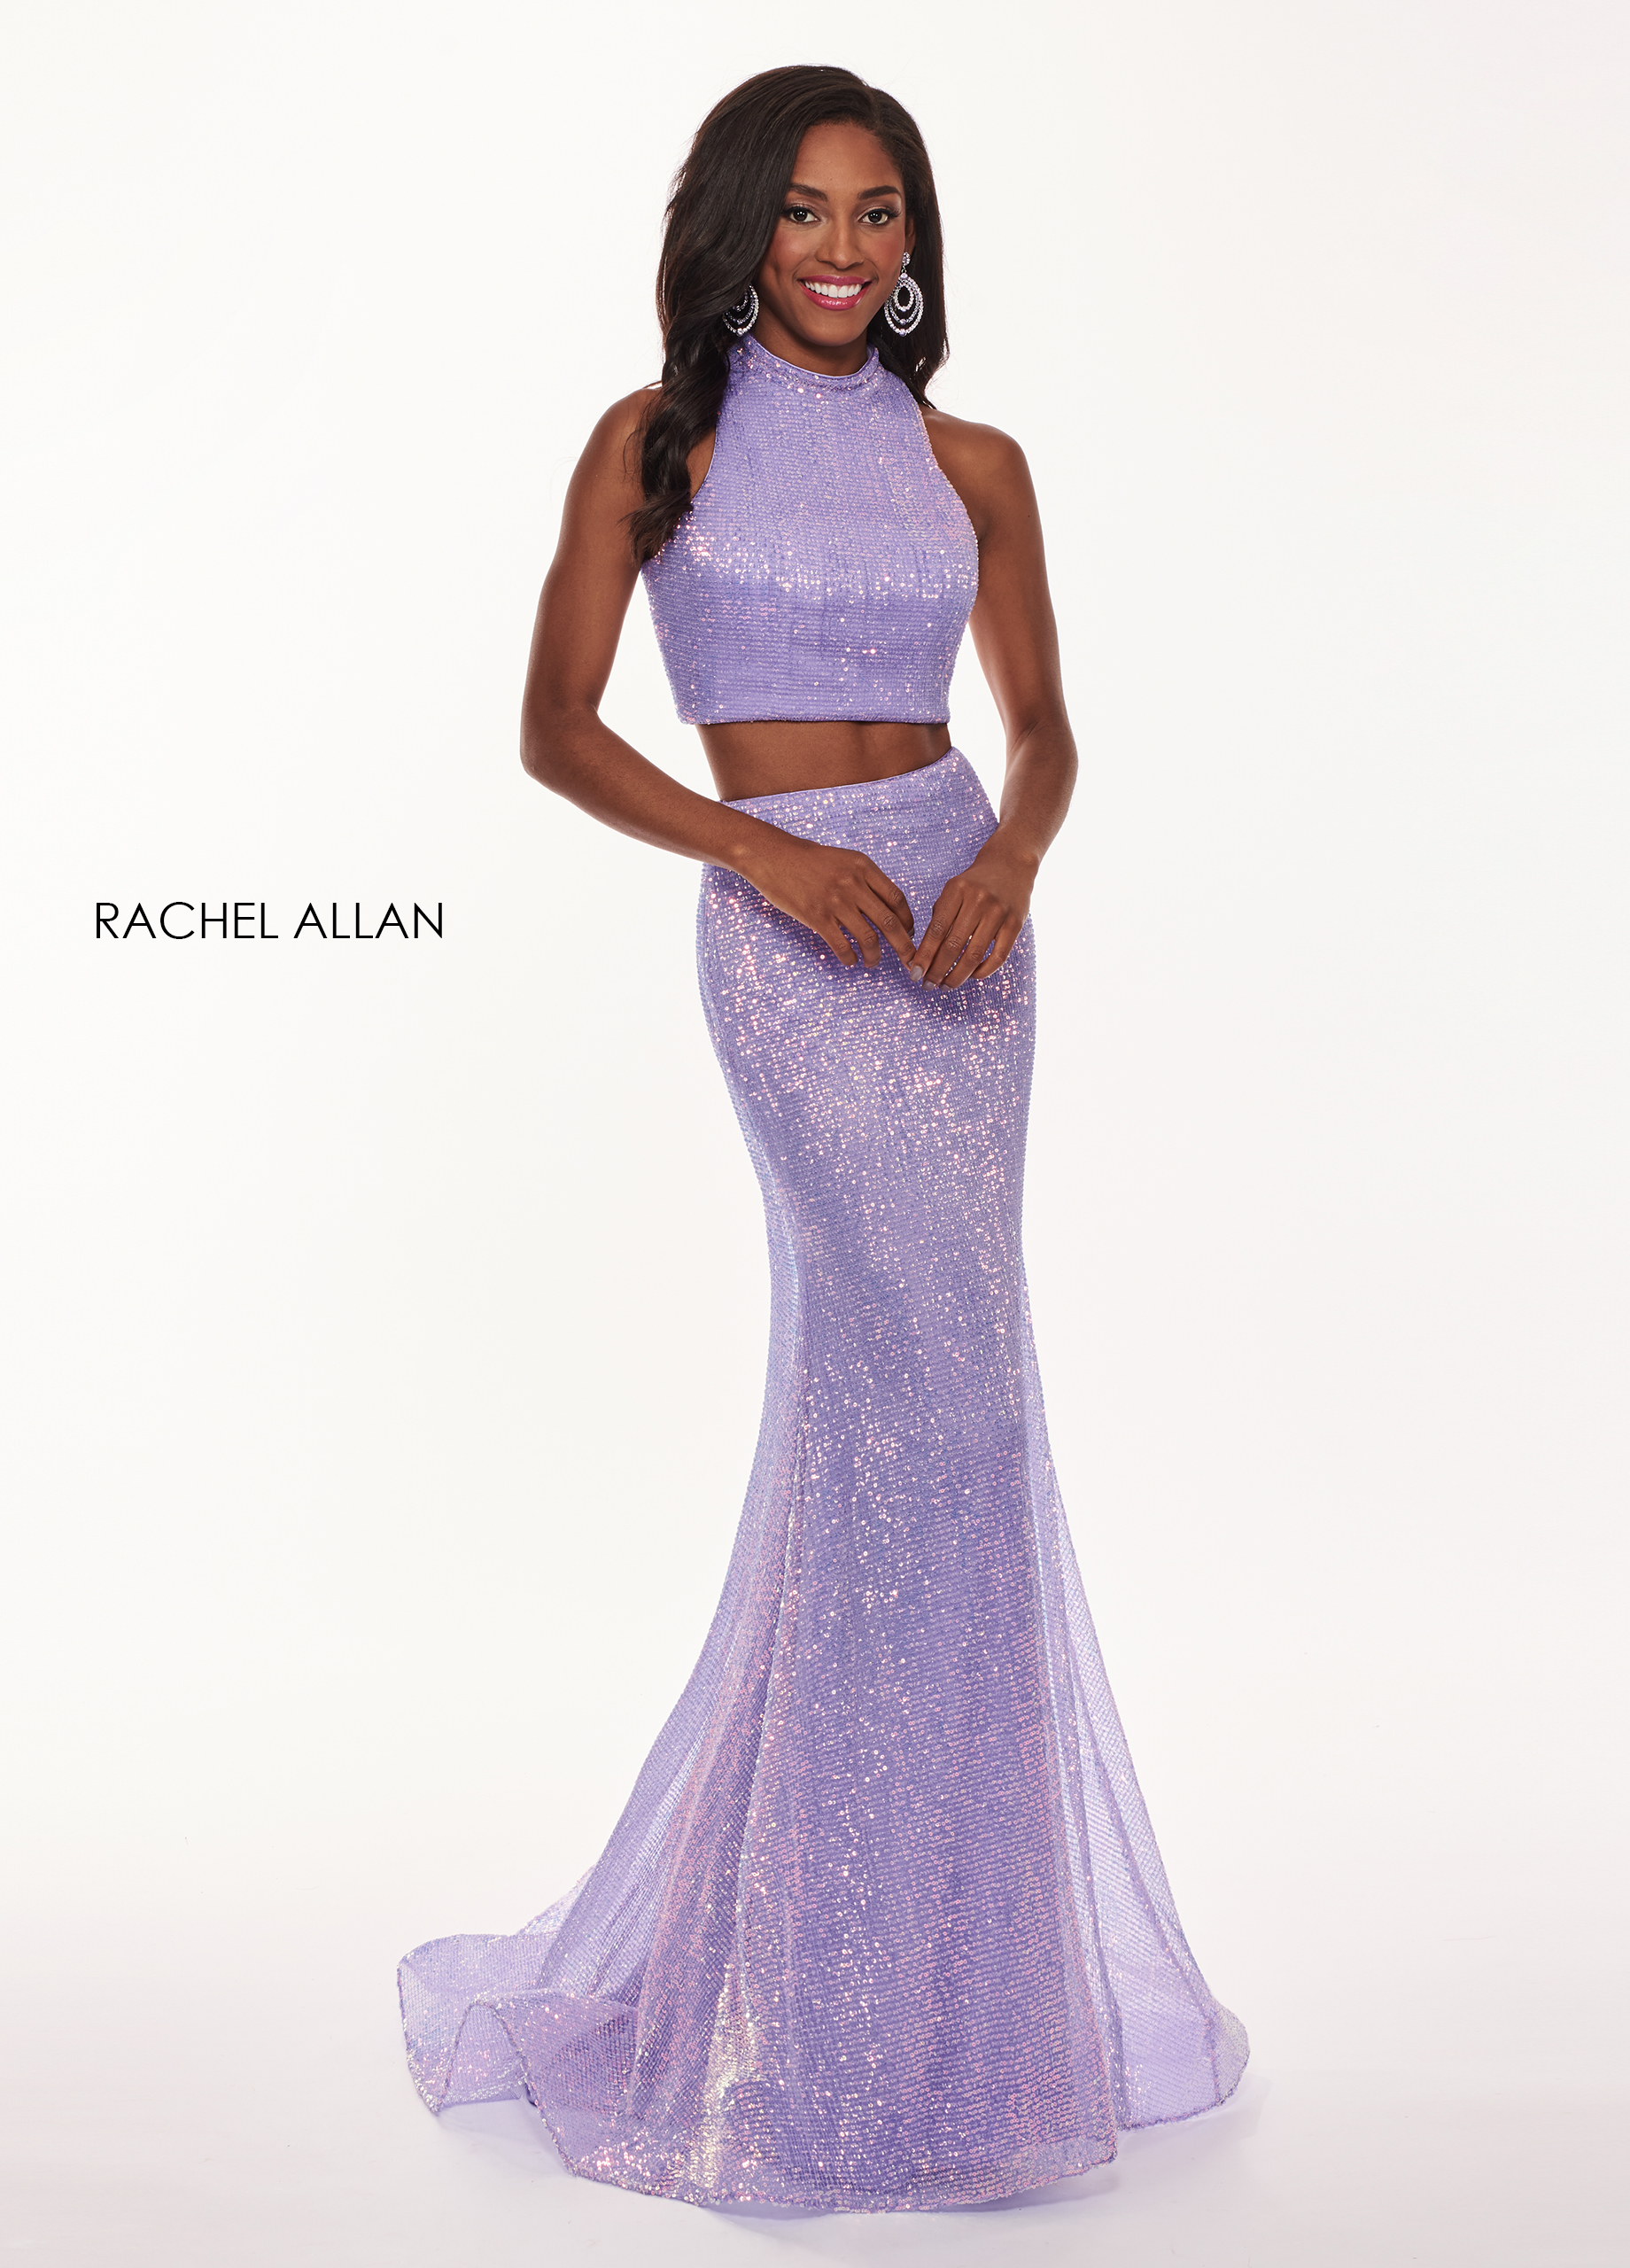 High Neckline Two-Piece Prom Dresses in Purple Color